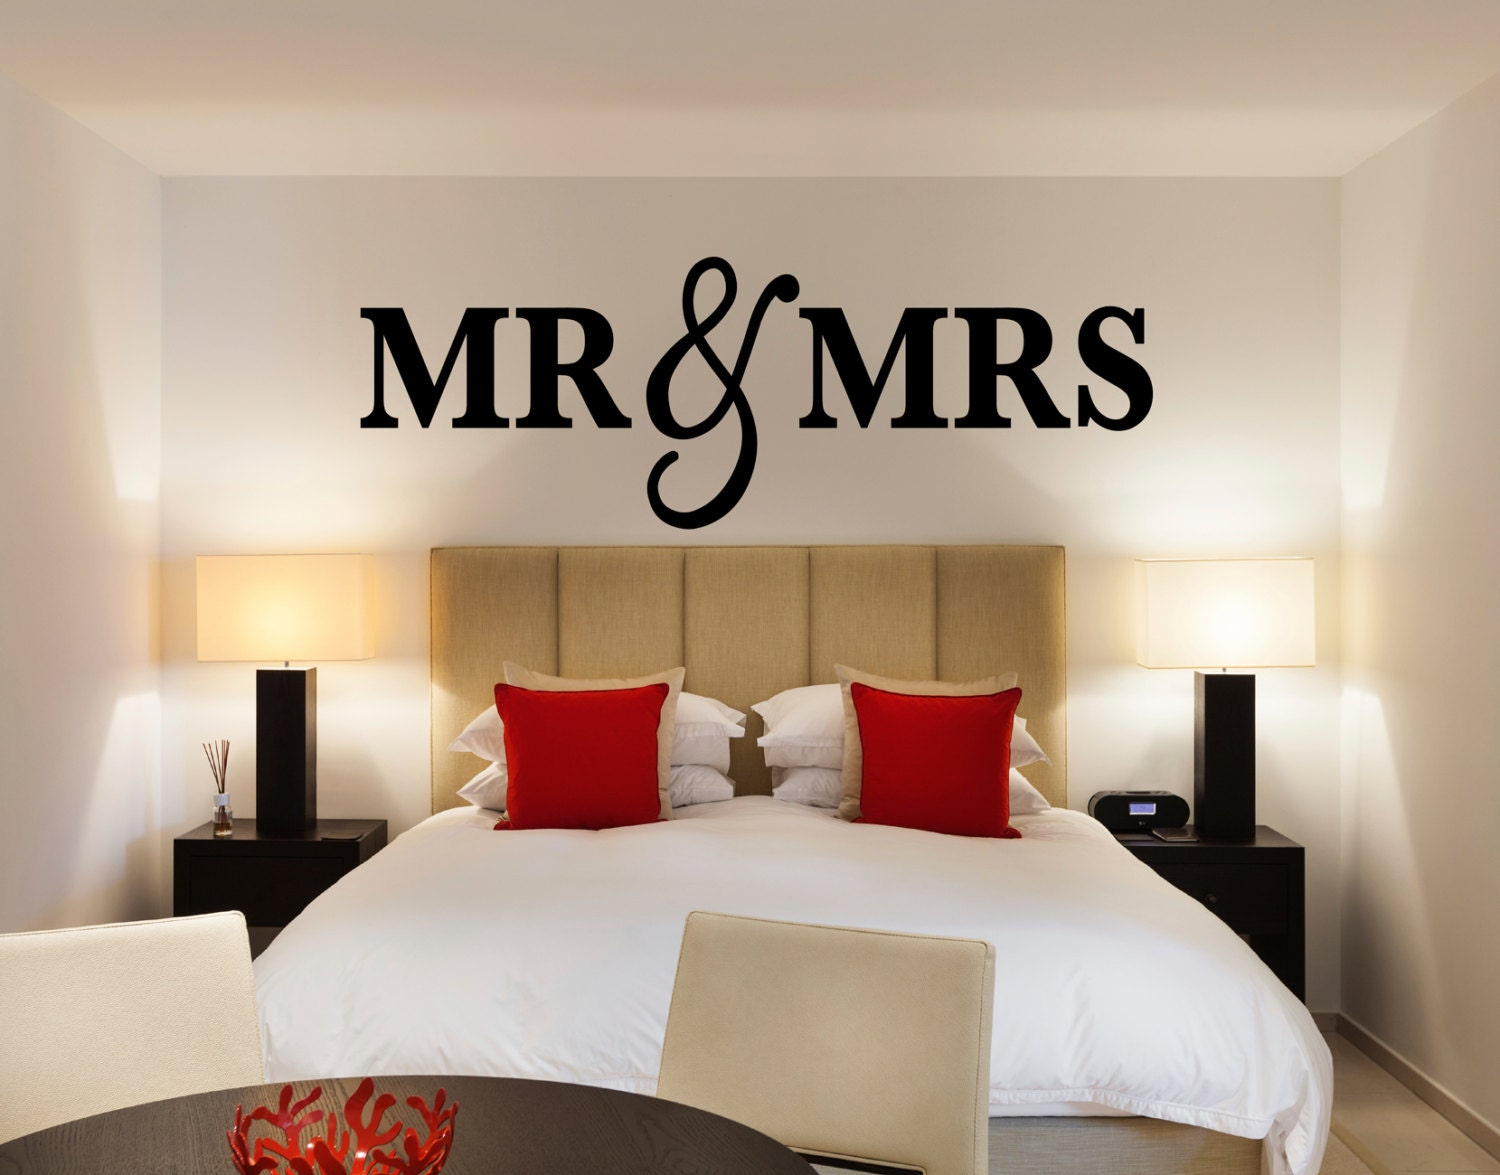 Mr and mrs wall decor